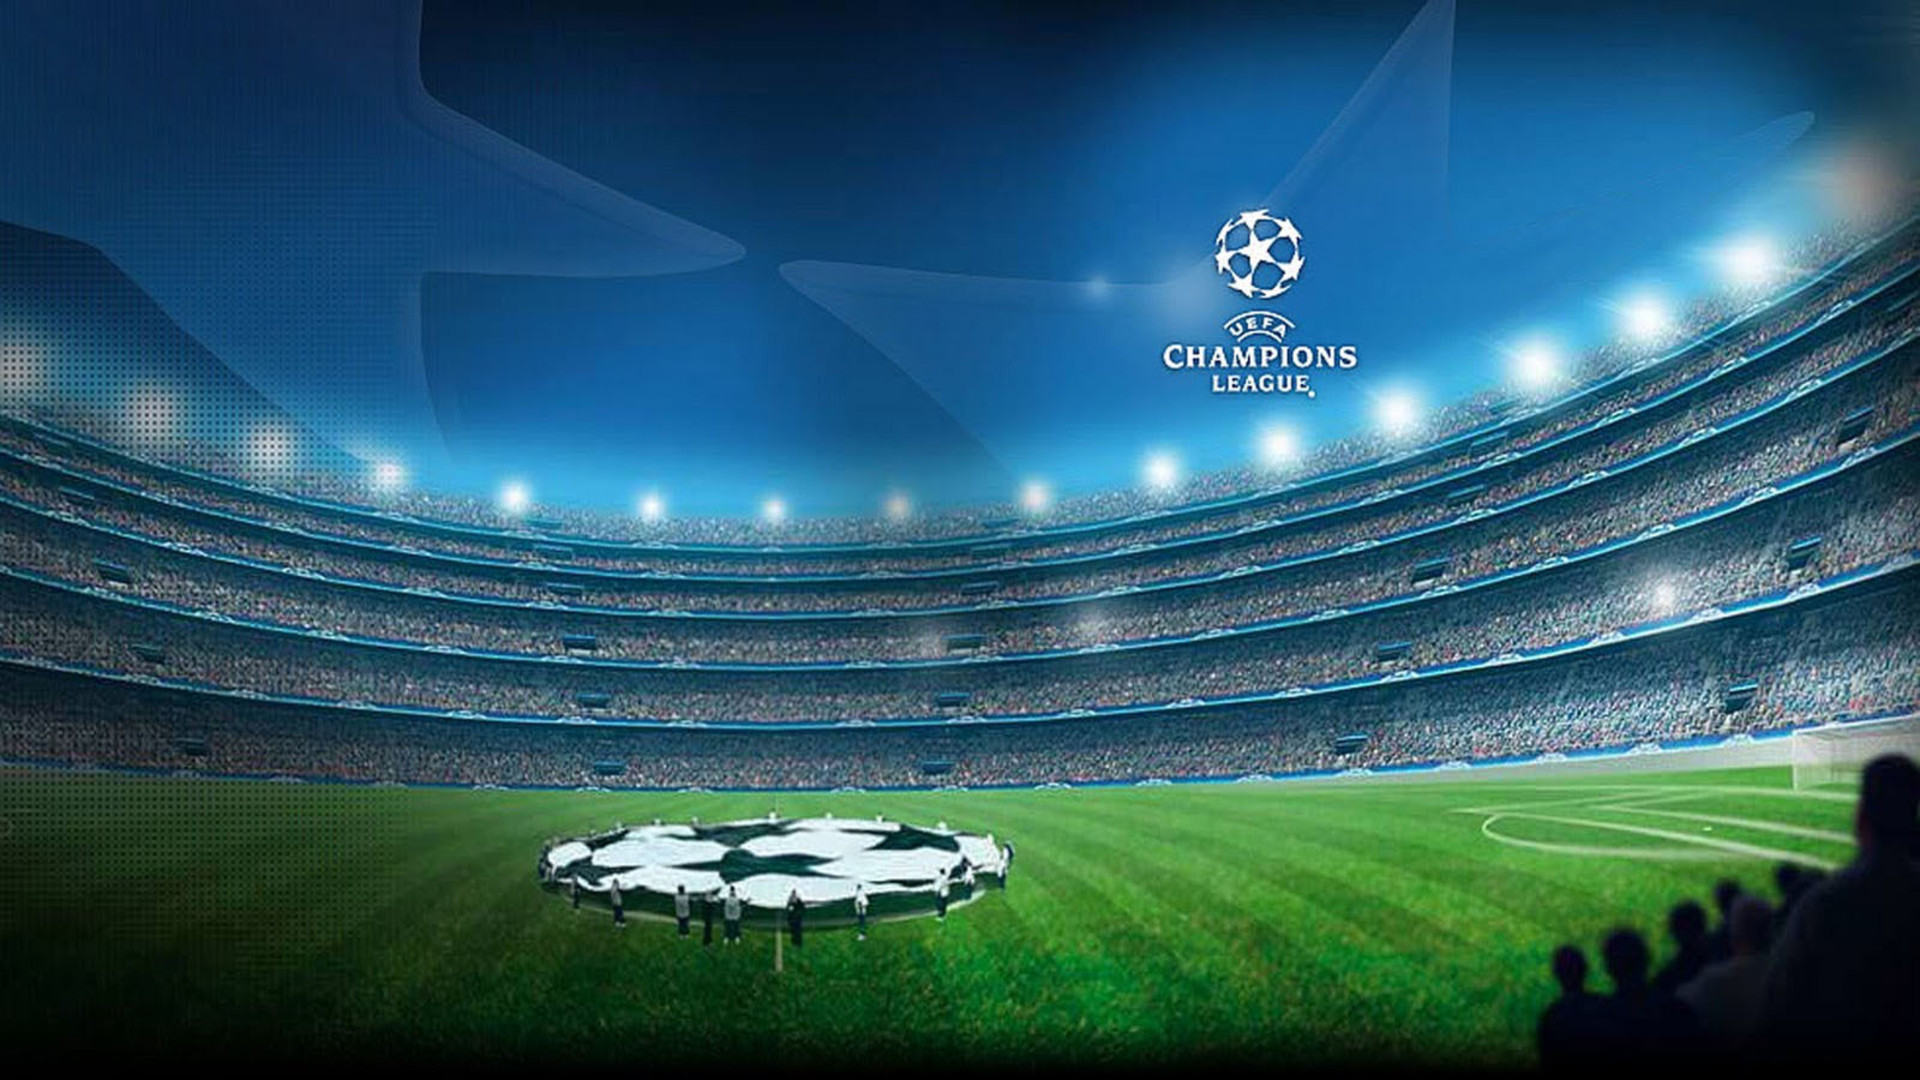 Uefa Champions League Wallpaper HD (72+ images)